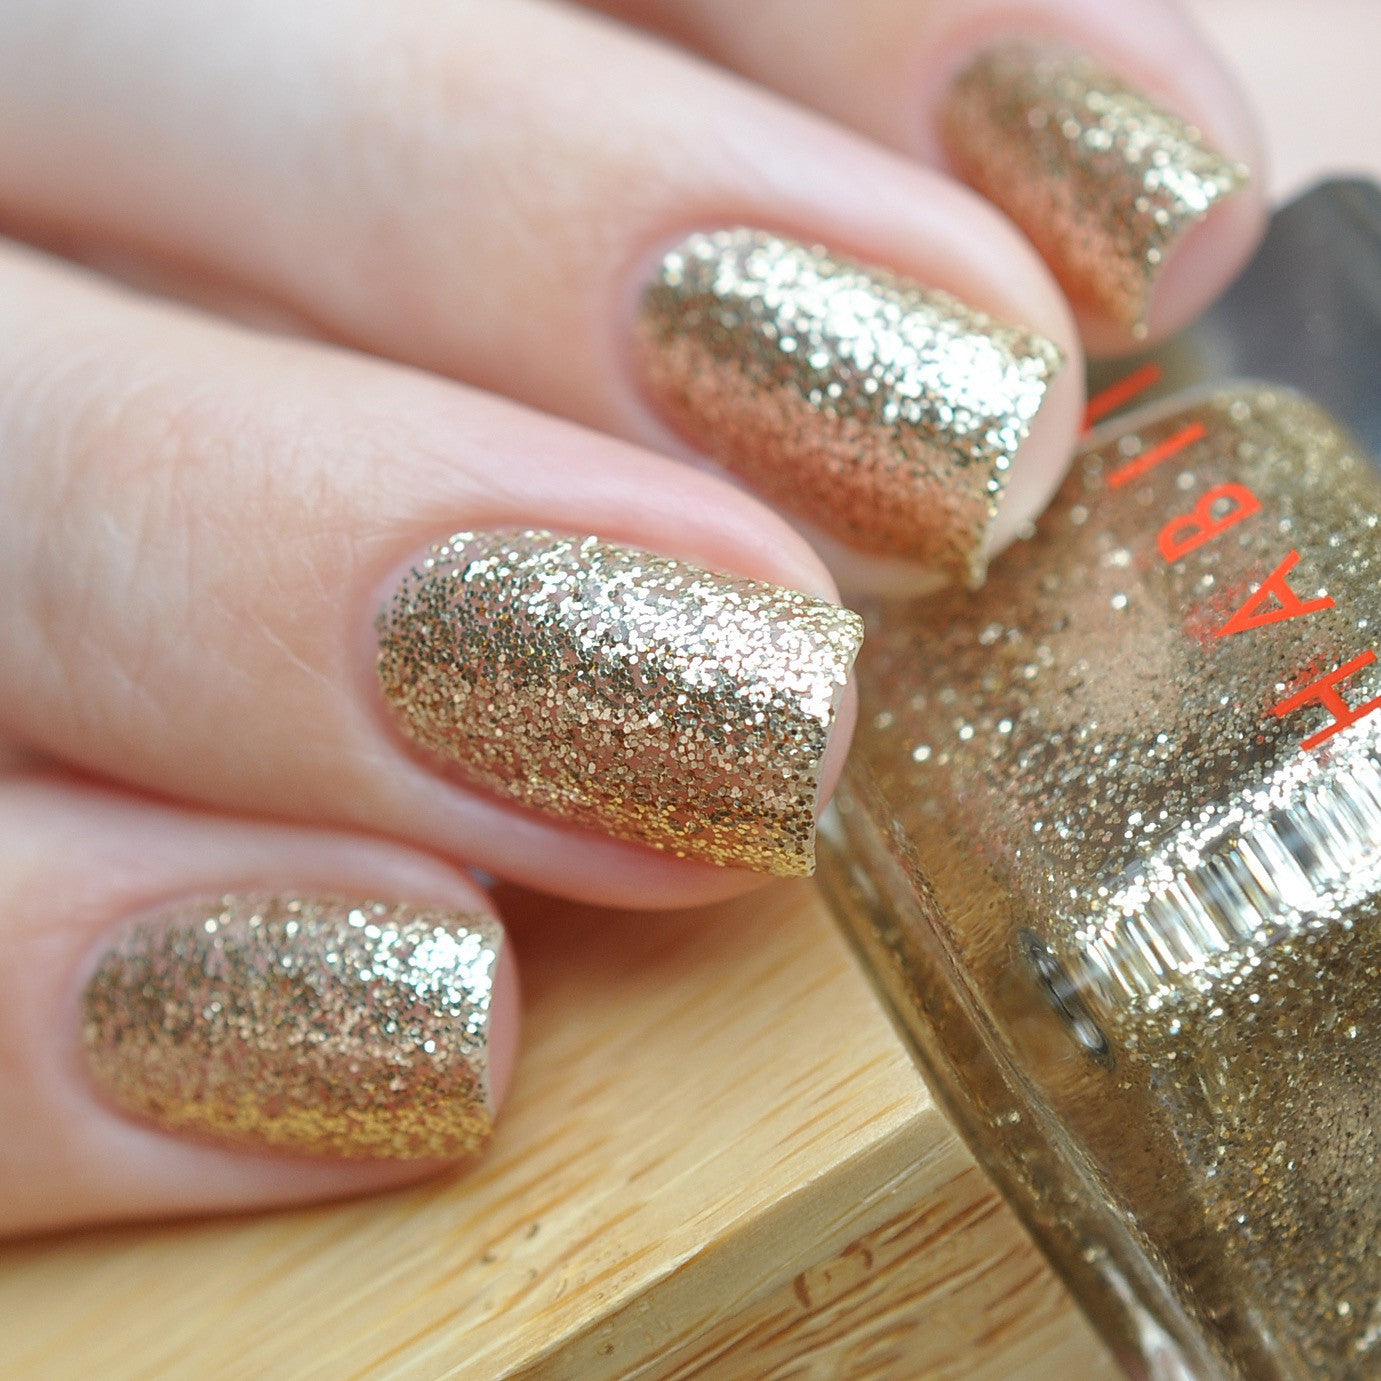 habit Cosmetics 31 PARIS IS BURNING Nail Polish